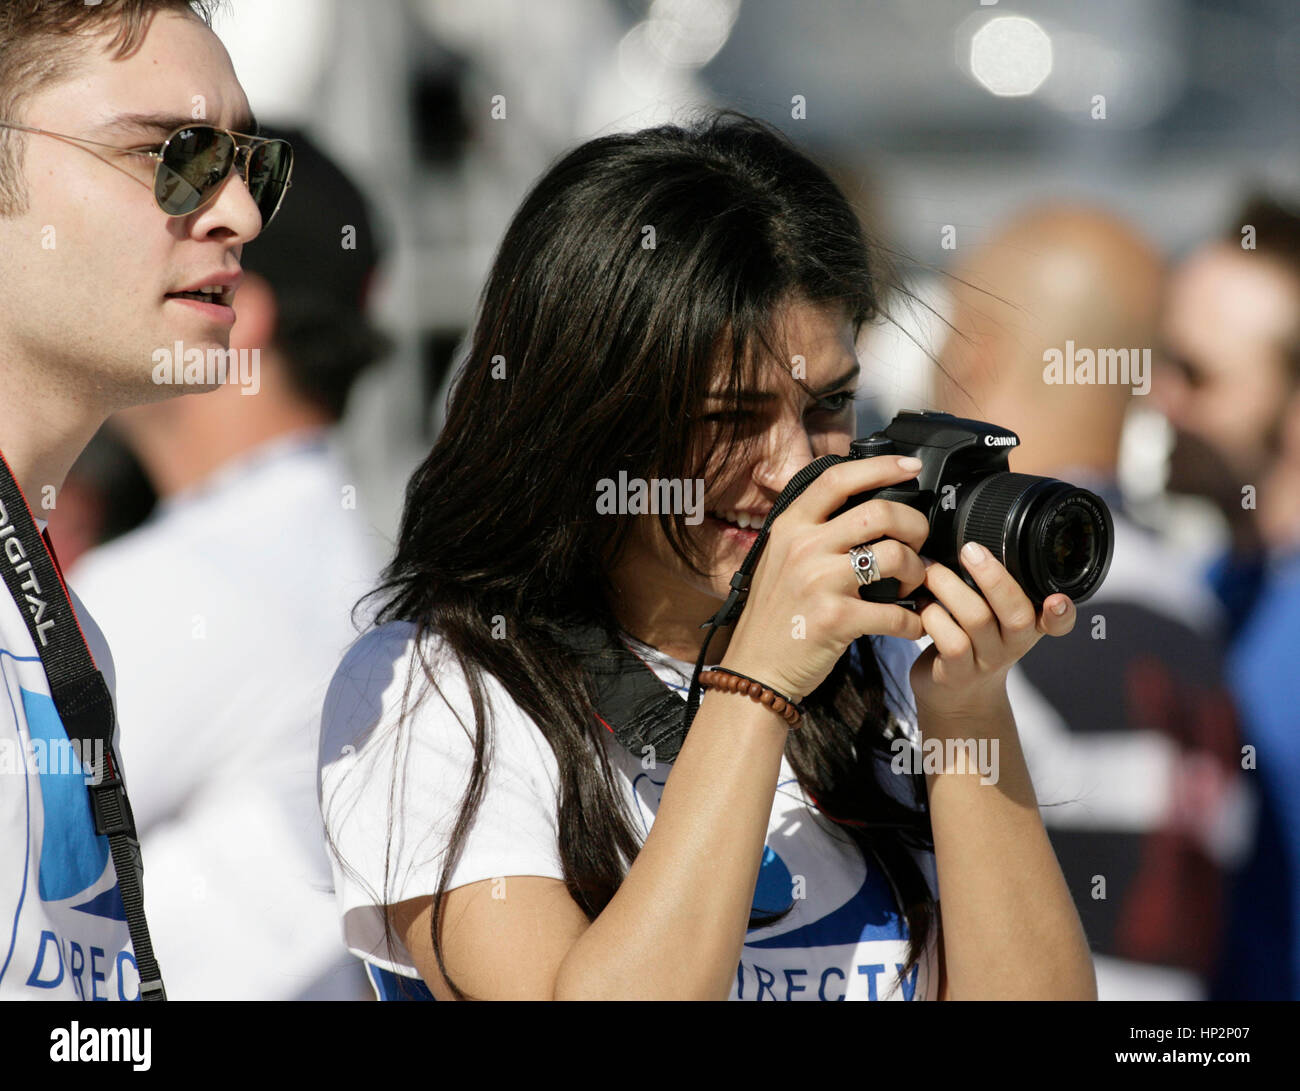 Ed Westwick and Jessica Szohr at the Directv Celebrity Beach Bowl in Miami Beach, Florida on February 6, 2010. Francis - Stock Image